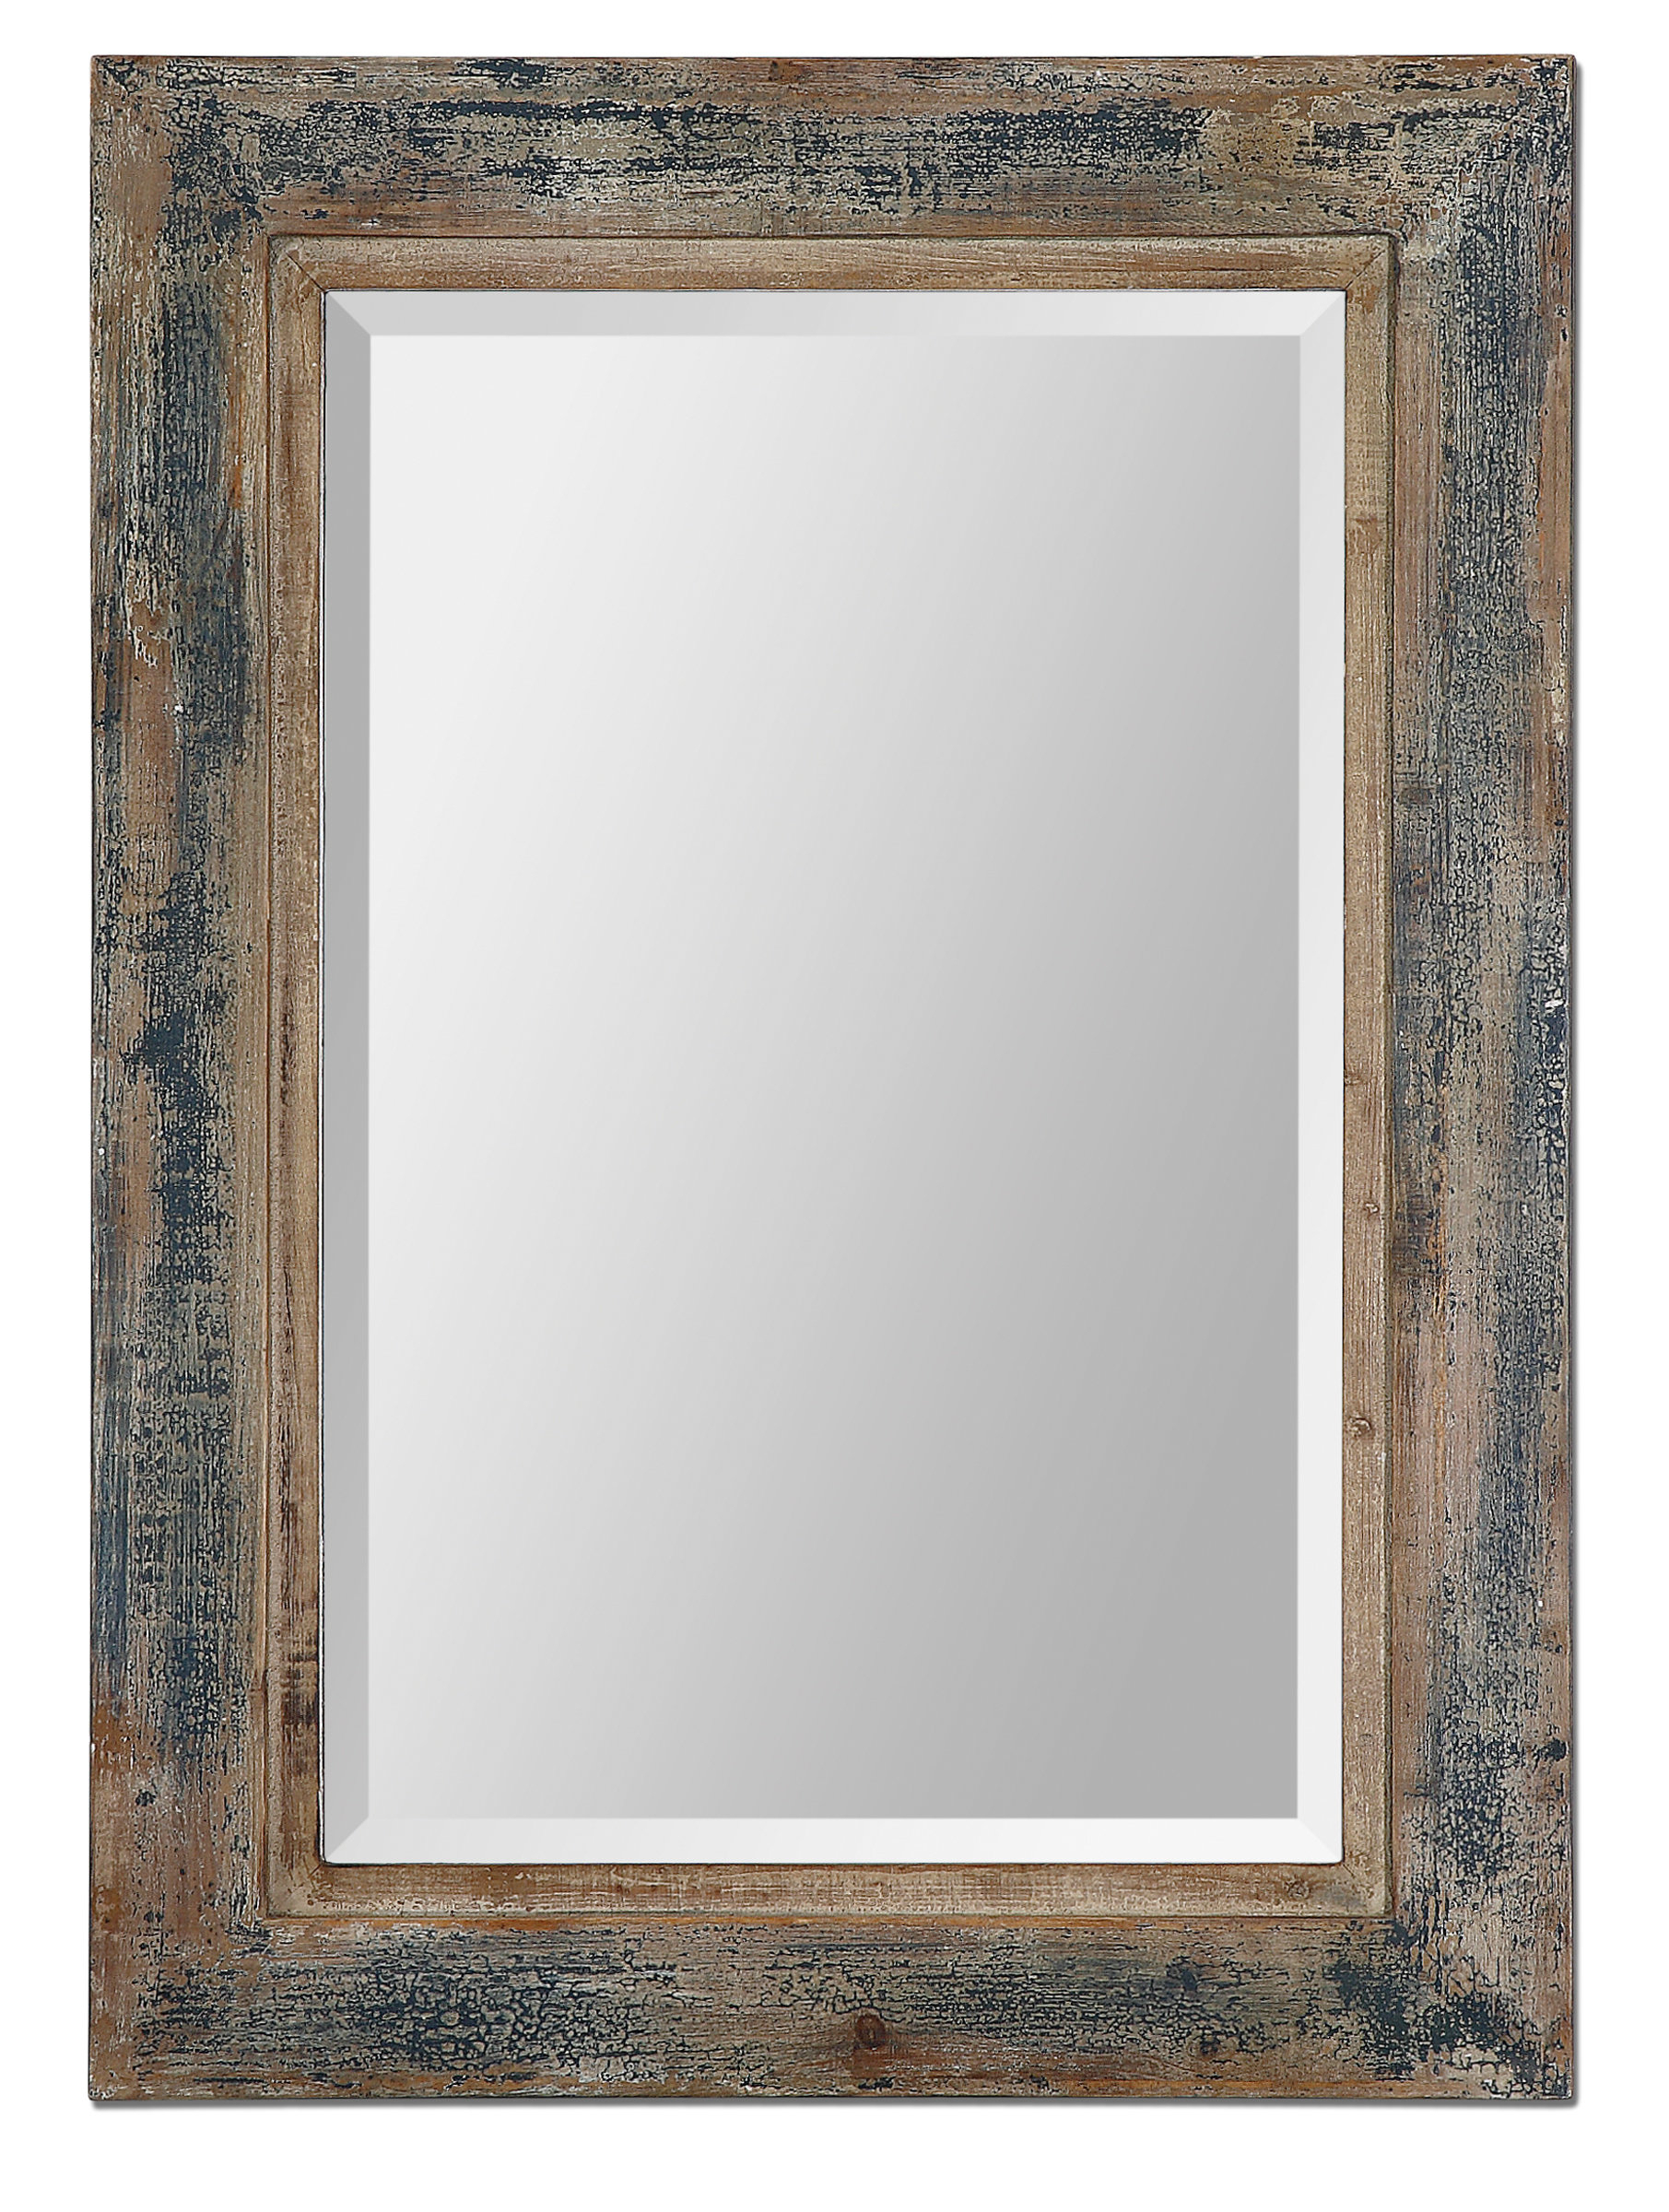 Modern & Contemporary Framed Bathroom Mirrors | Allmodern With Regard To Landover Rustic Distressed Bathroom/vanity Mirrors (View 23 of 30)